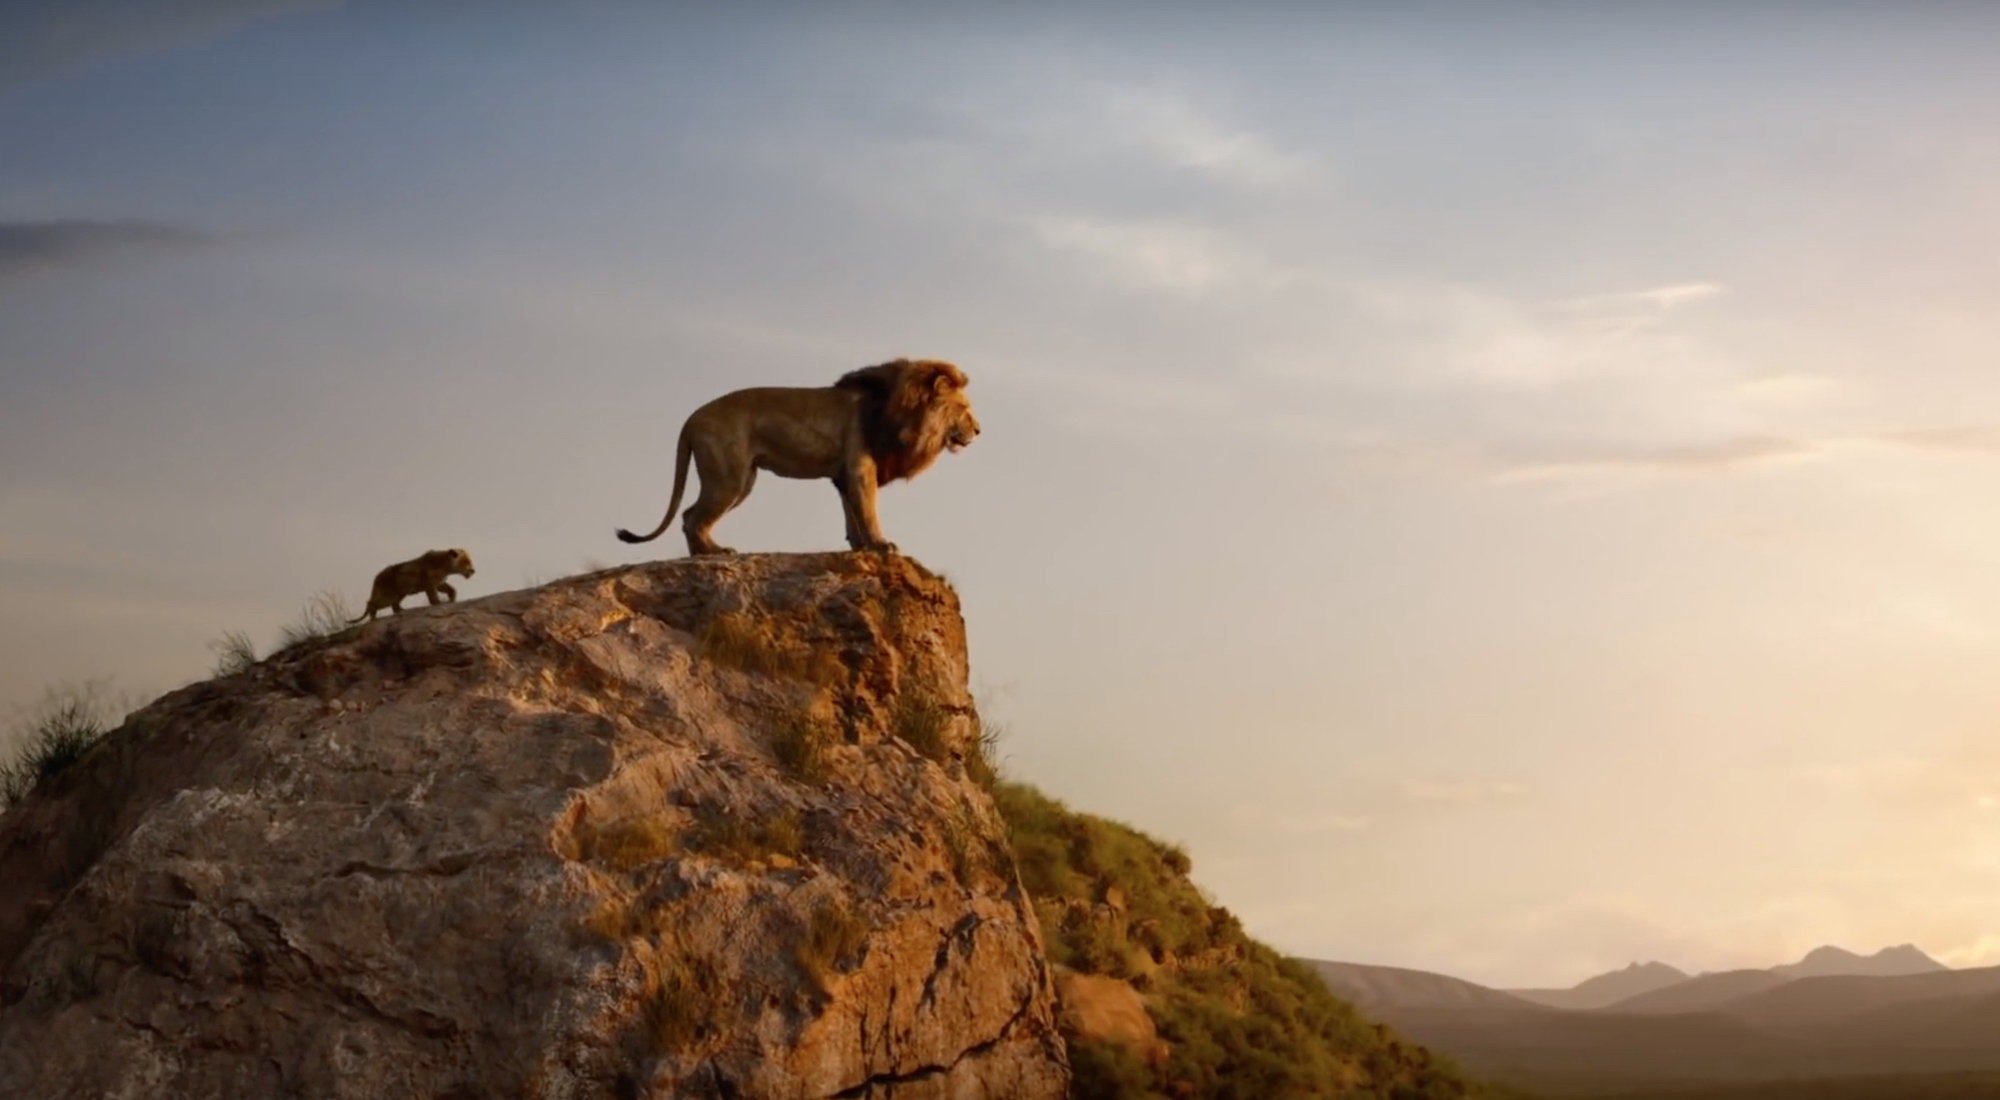 Wonderland film review The Lion King Mufasa and Simba